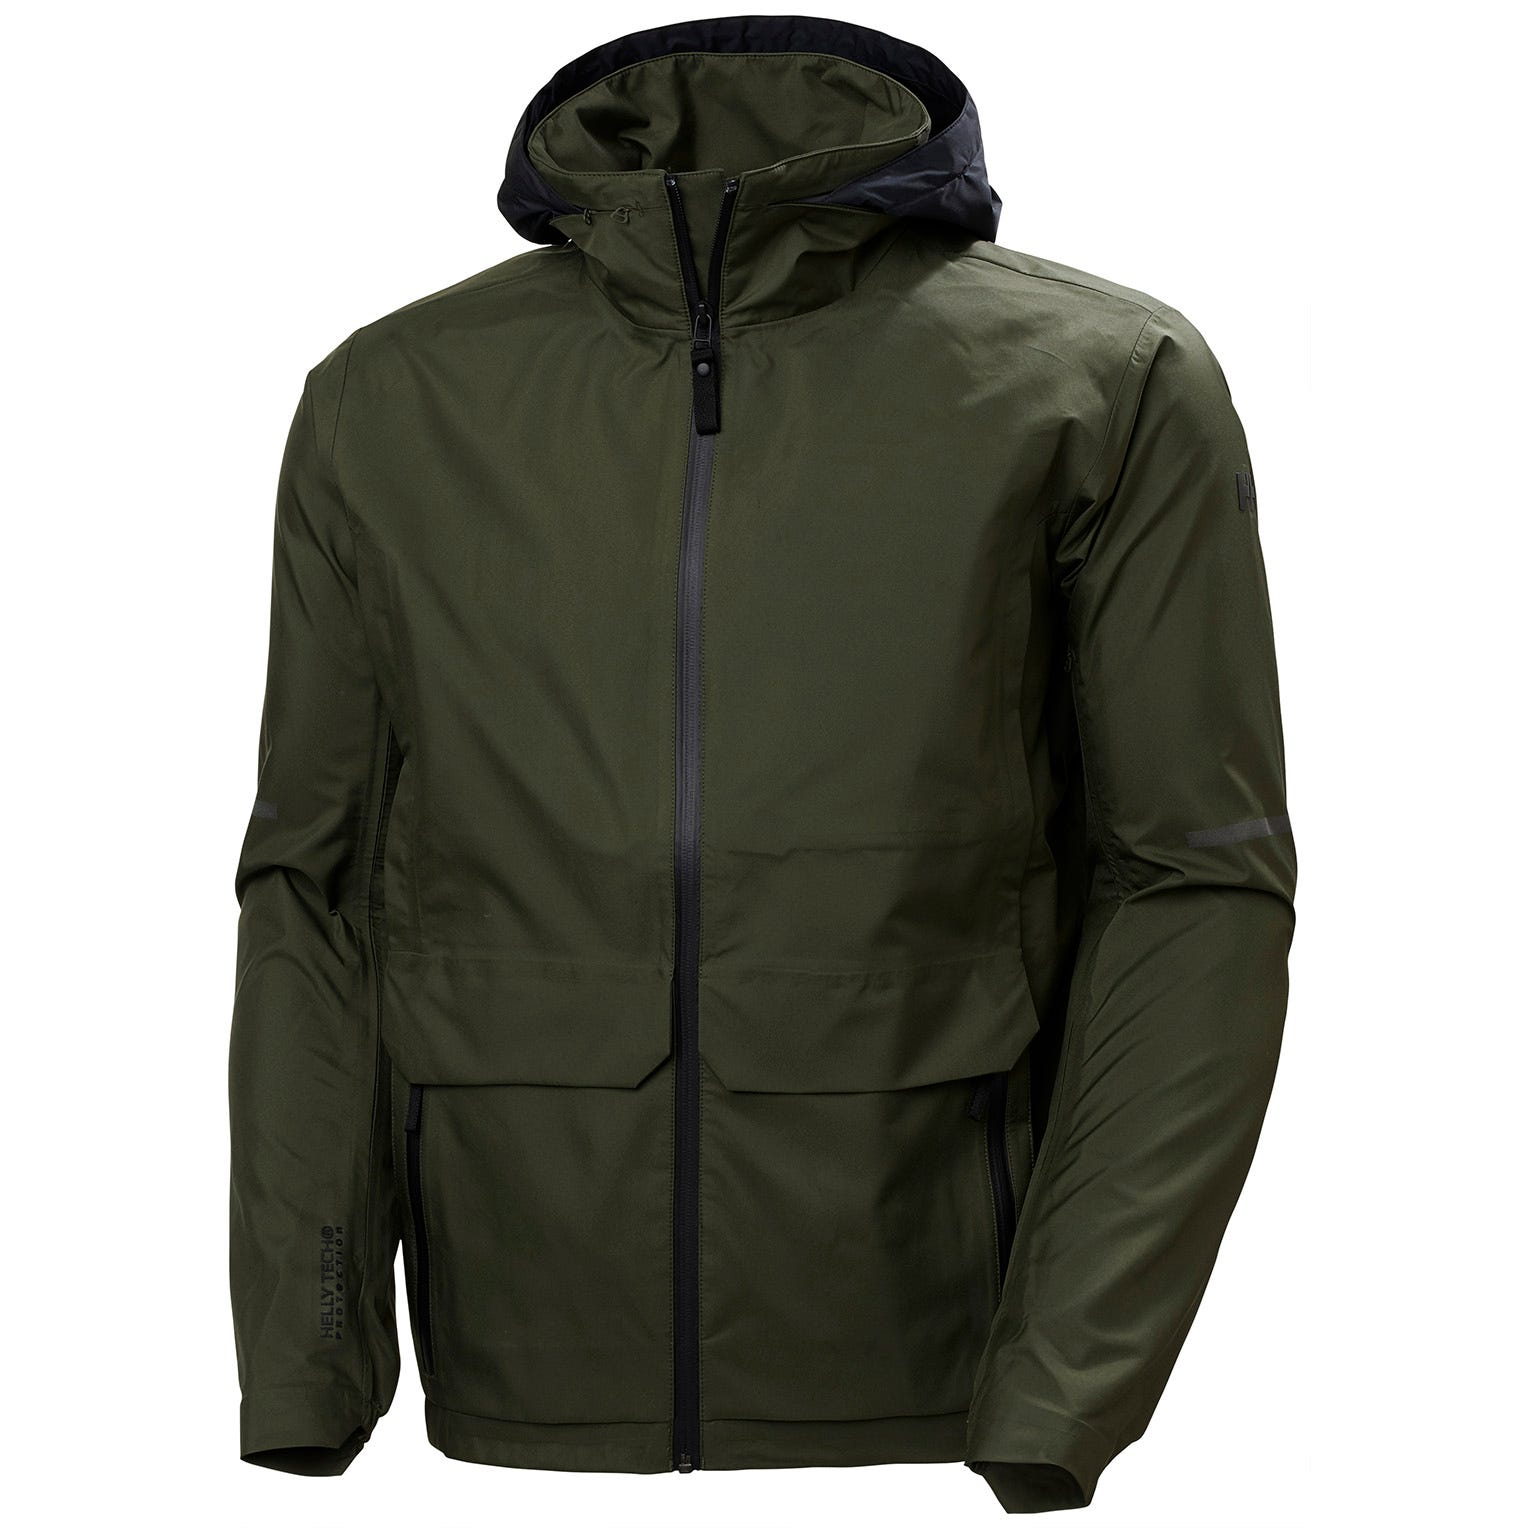 Edge 3l Jacket | Active Lifestyle Breathable Gb Helly Hansen Mens Green S